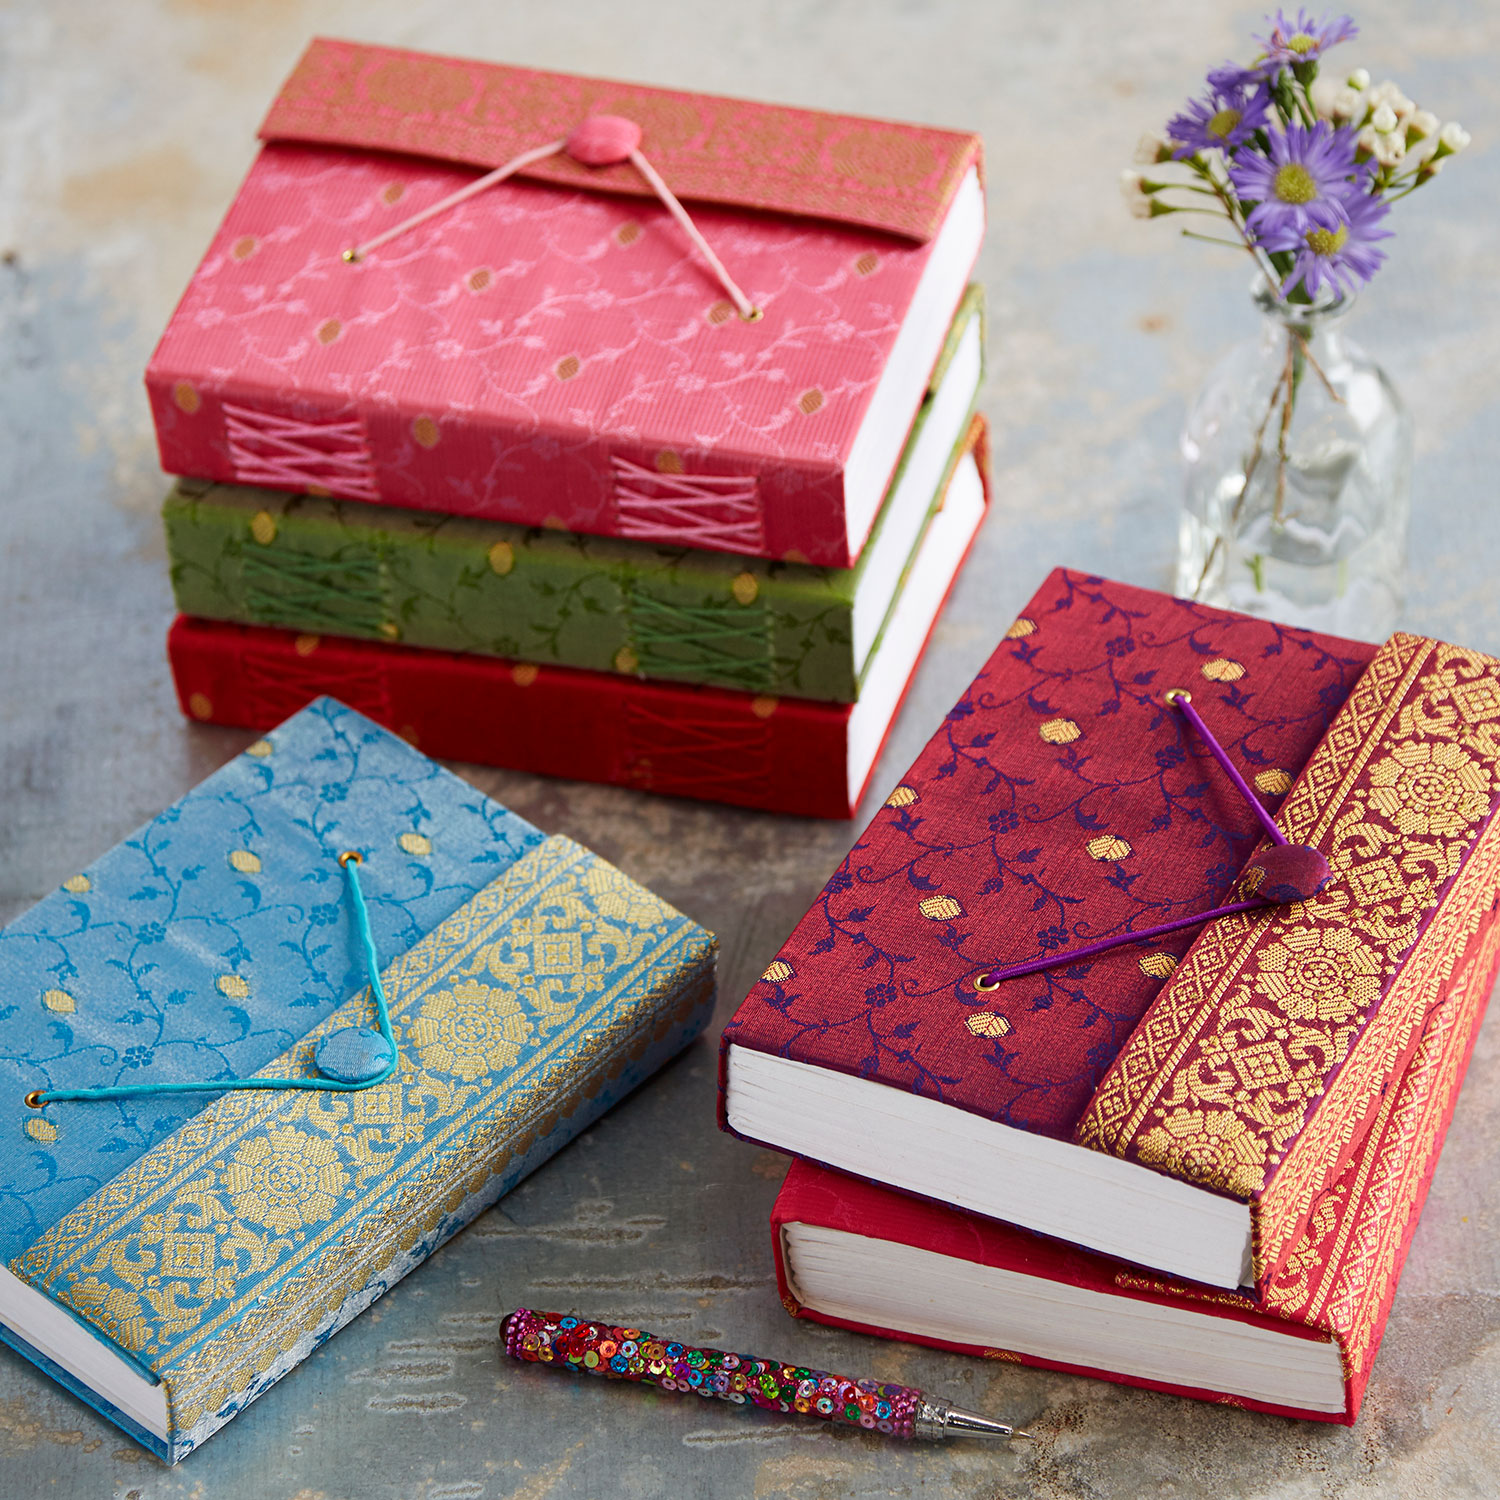 Sari Notebooks & Journals